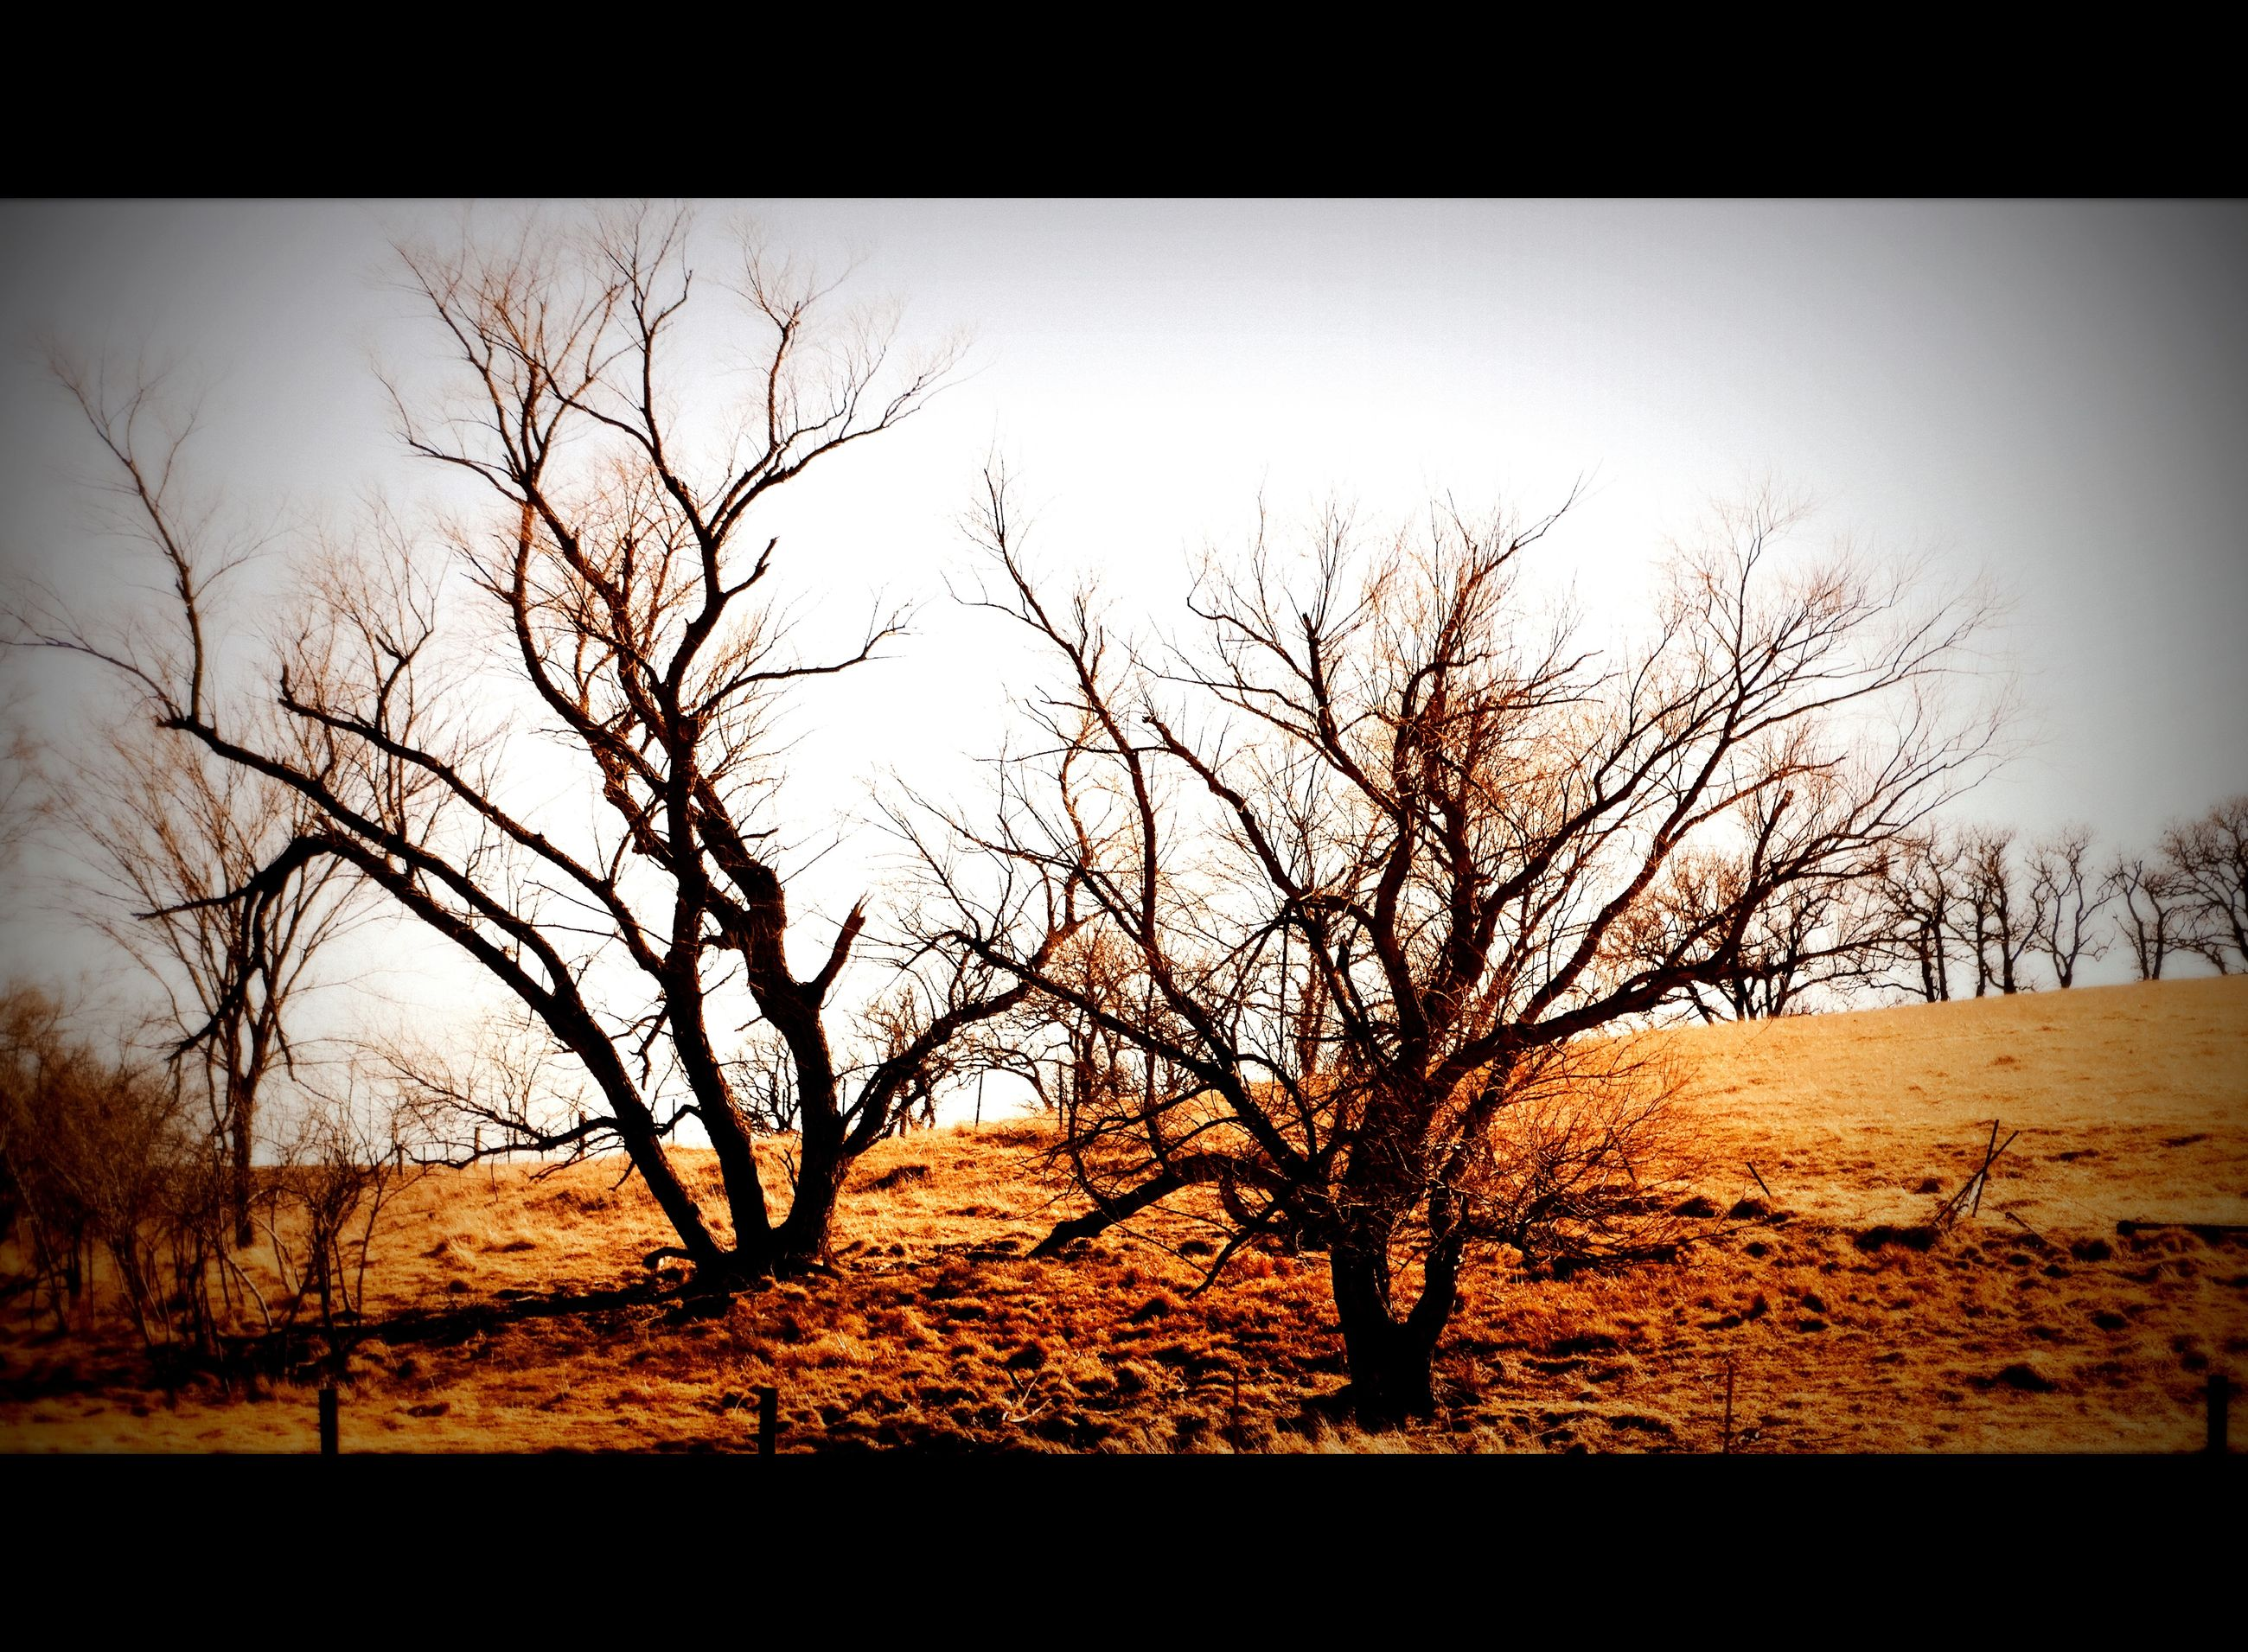 bare tree, nature, landscape, tree, tranquility, beauty in nature, branch, outdoors, no people, sky, lone, scenics, day, bleak